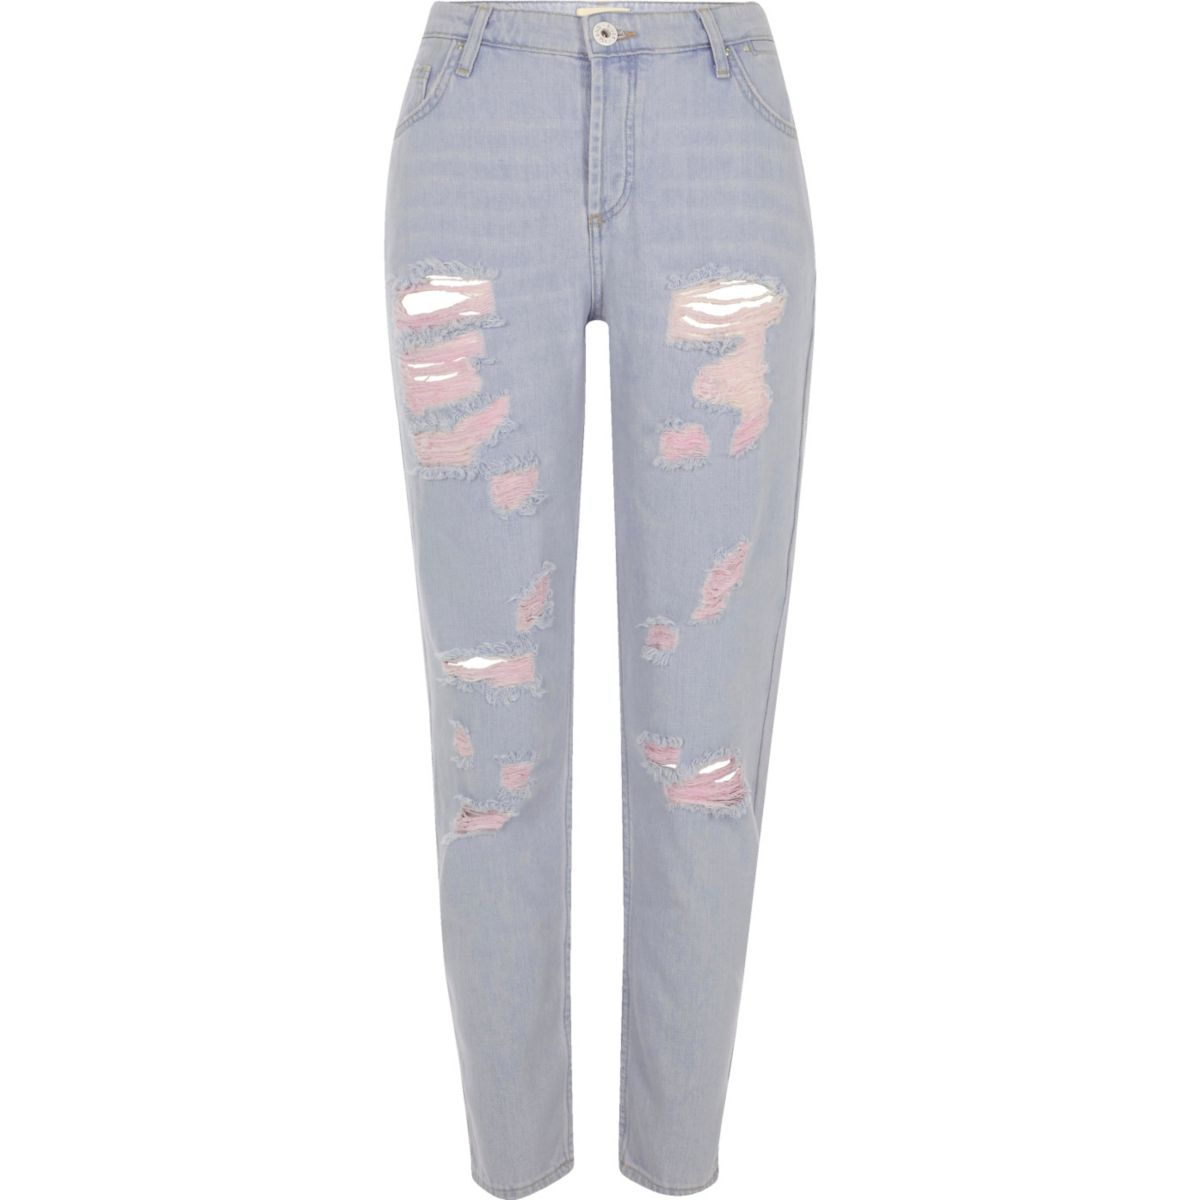 Blue denim pink tint ripped boyfriend jeans